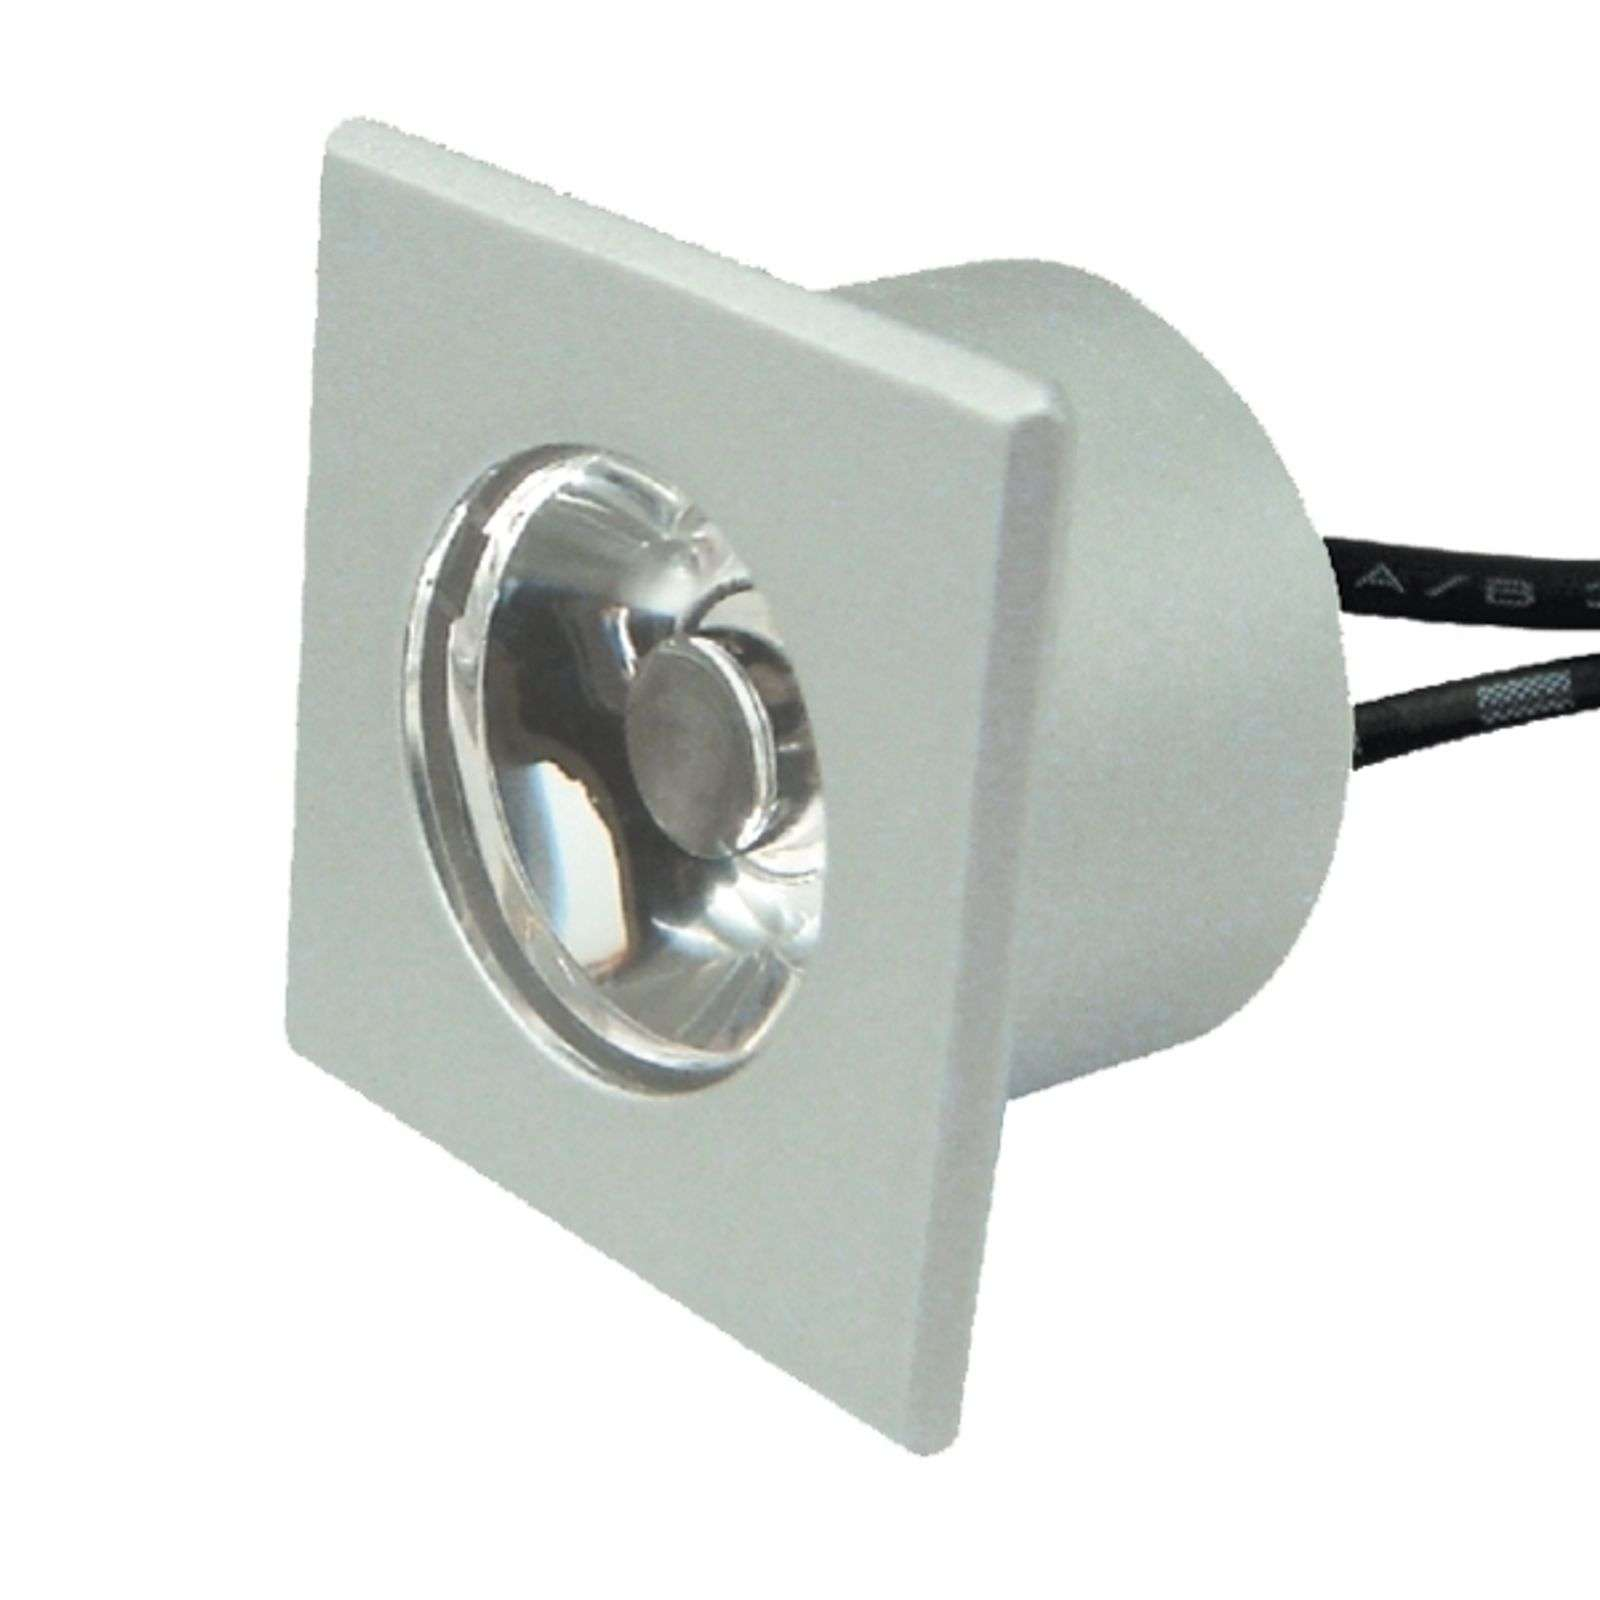 Spot encastrable carré LED SANTO blanc chaud